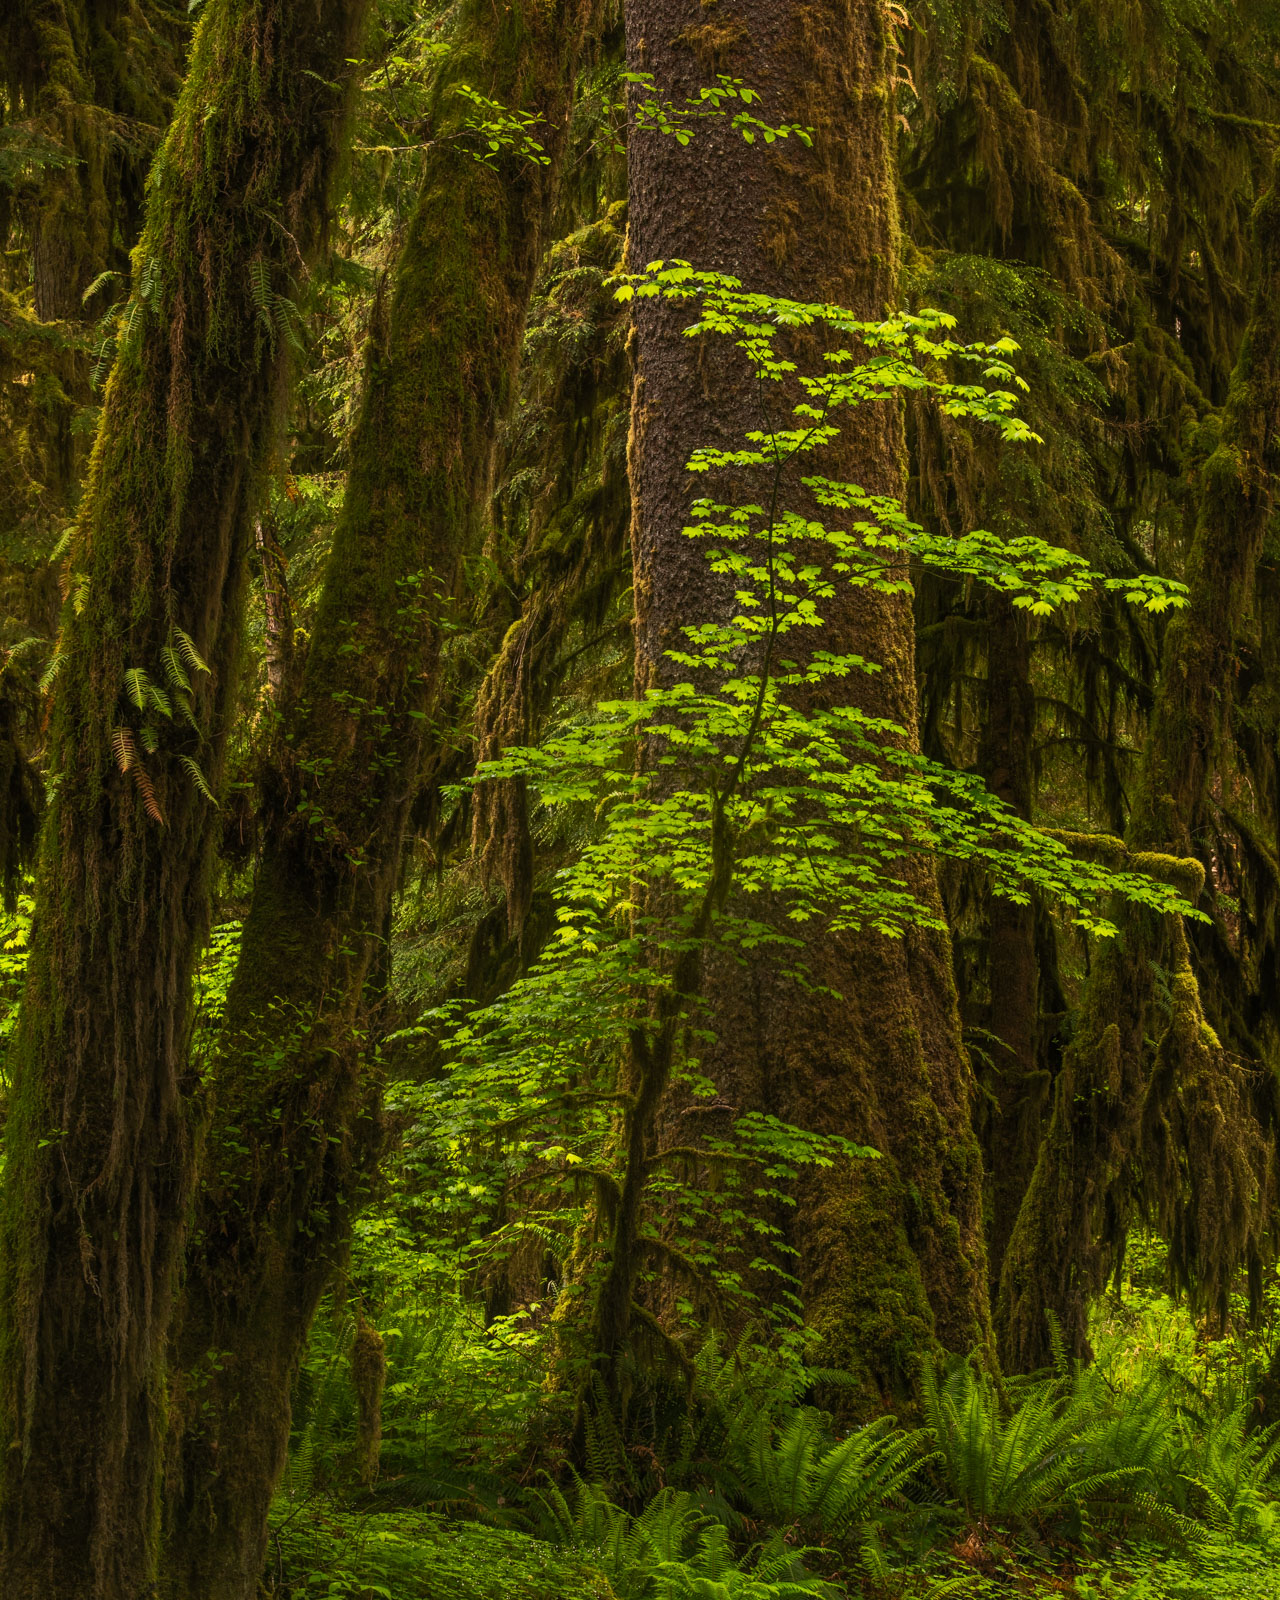 A Vine Maple in the shadow of a gigantic Cedar tree in the Hoh Rainforest.